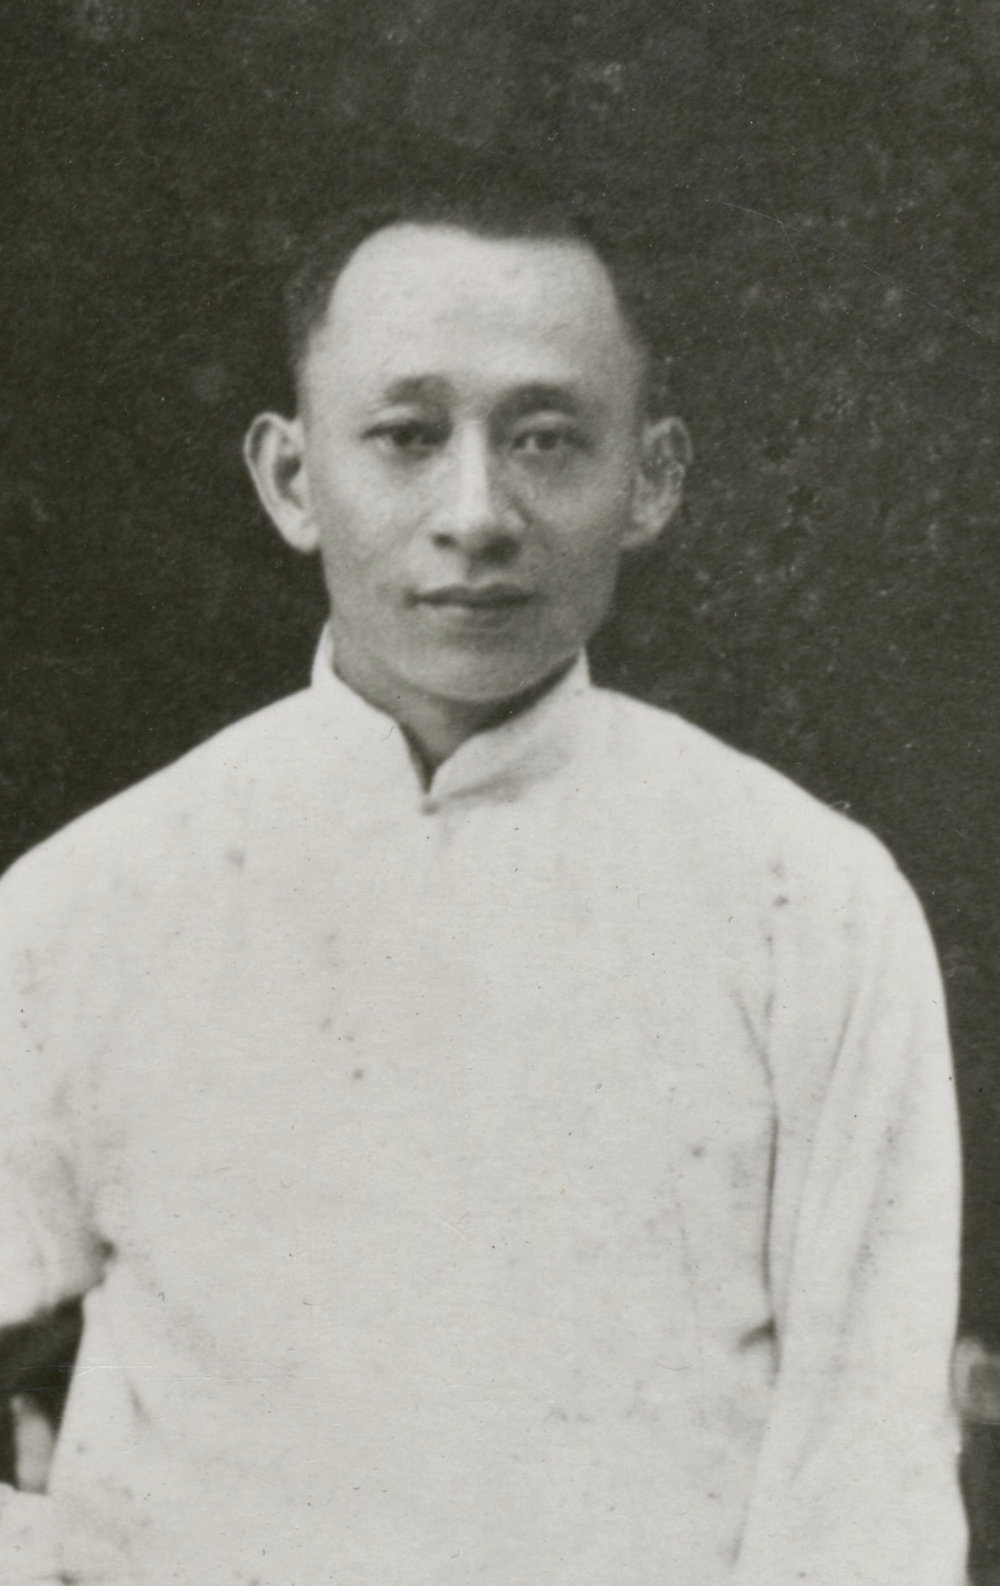 Y.Y. Wong in 1933. Image courtesy Alexander Jay.